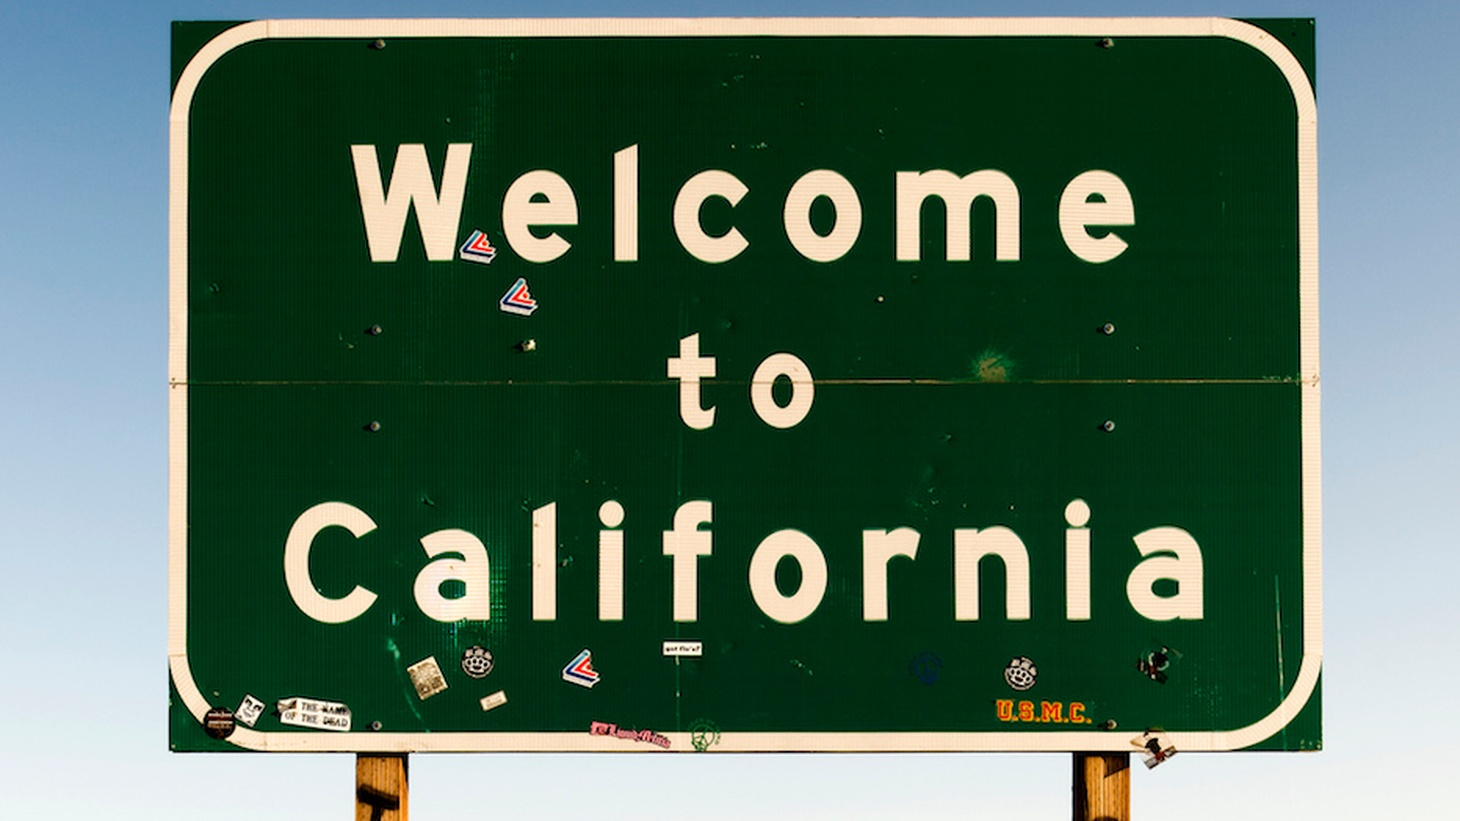 Compared to our neighbors to the north, east and south, California's borders are pretty shabby. Why? Well, it may just have to do something with our priorities as a state.